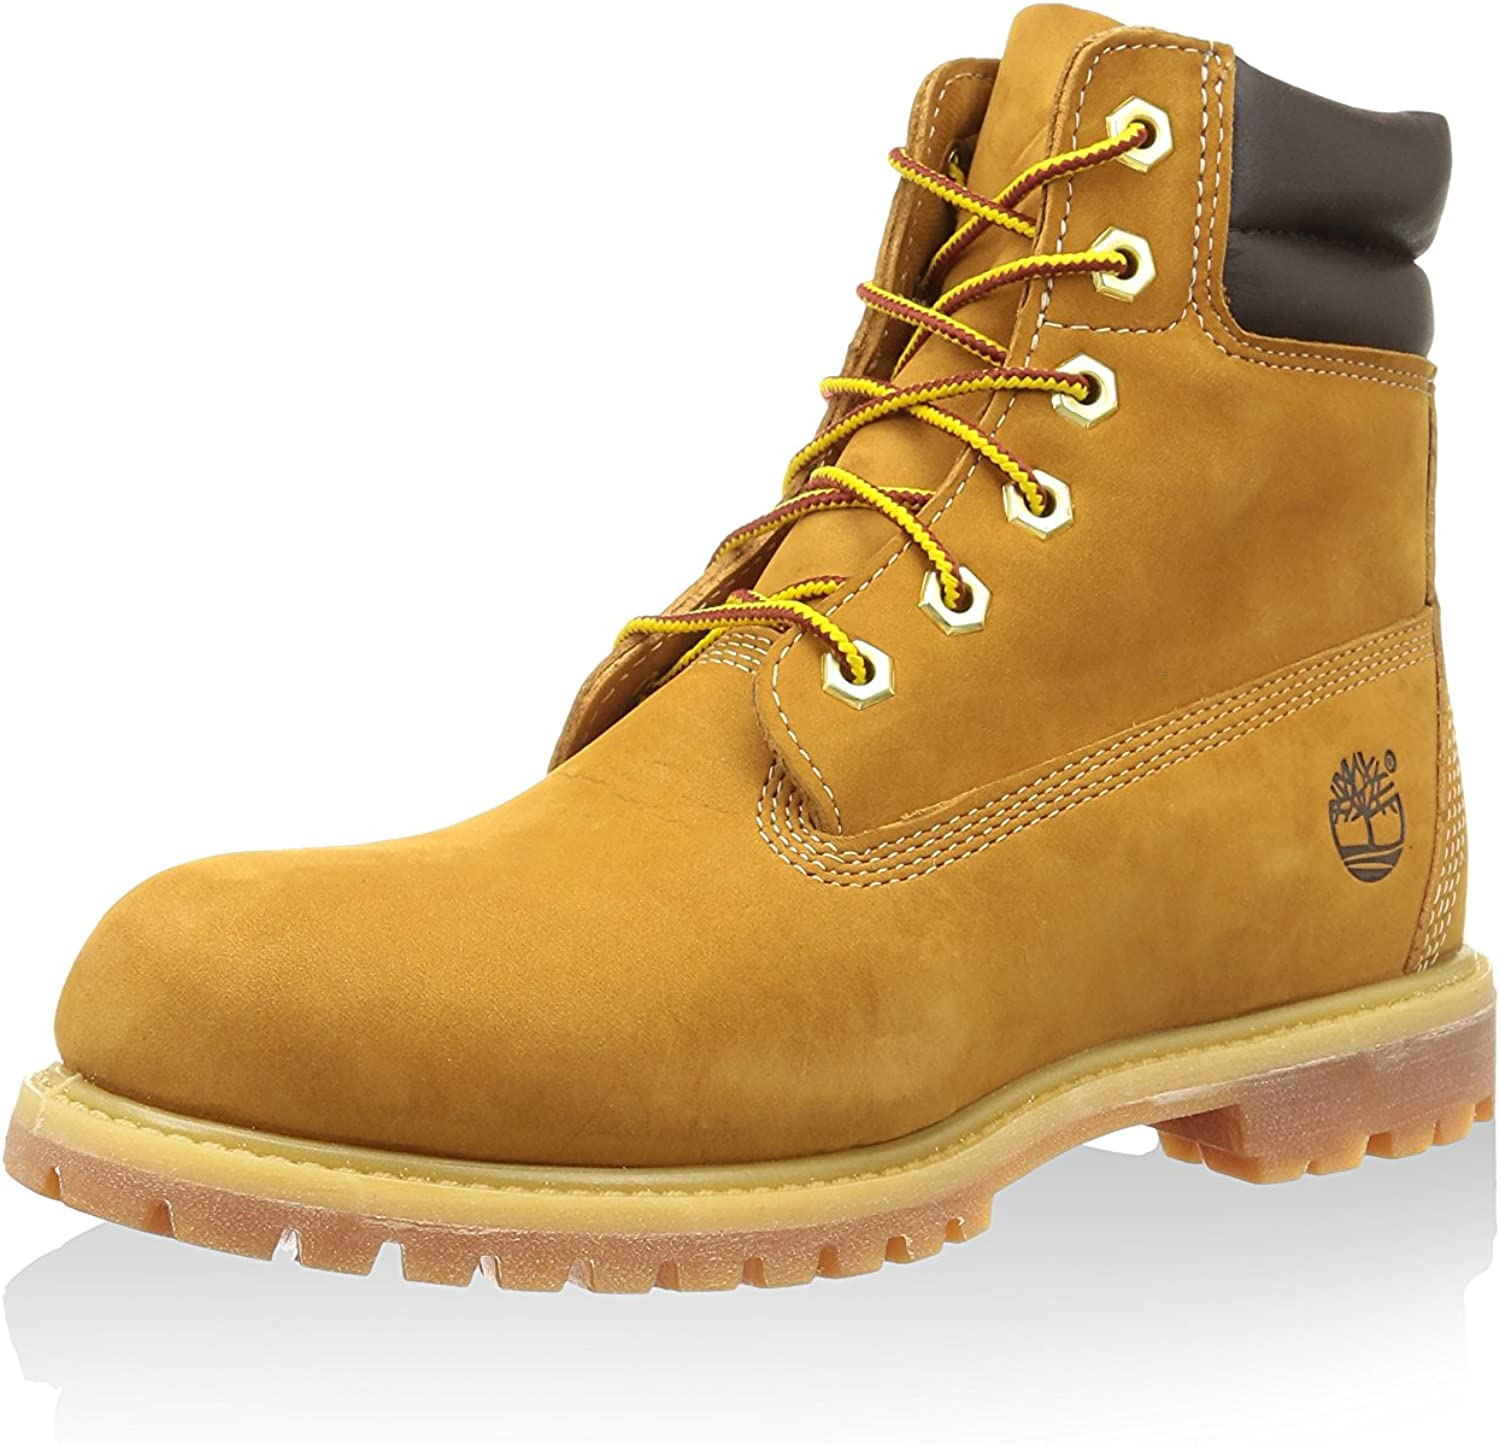 Timberland Womens Waterville 6 Inch Double Collar Boot,Wheat Nubuck/Leather,US